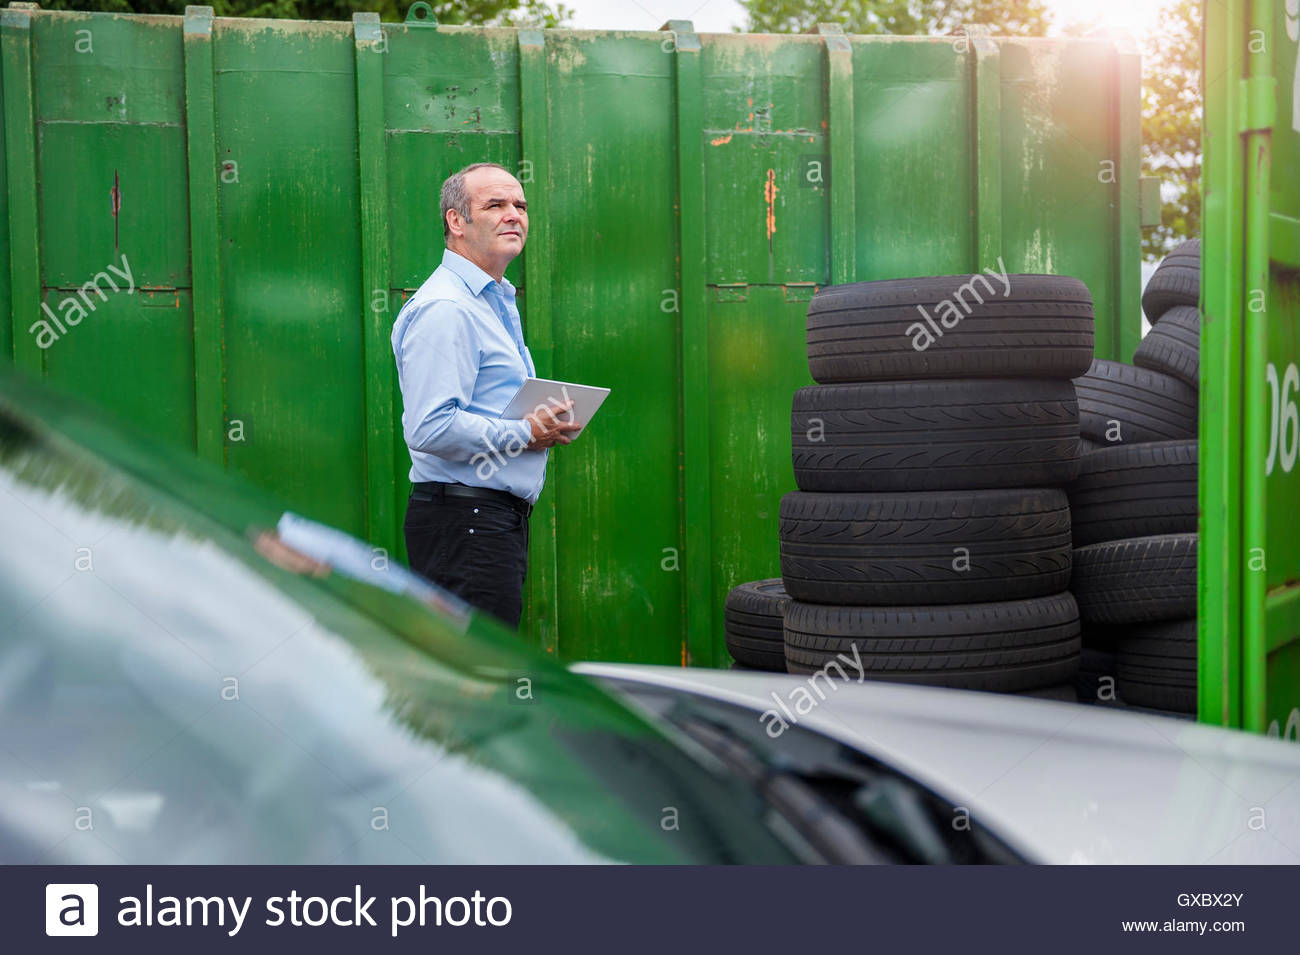 Senior male business owner monitoring stacked tyres in repair garage yard - Stock Image